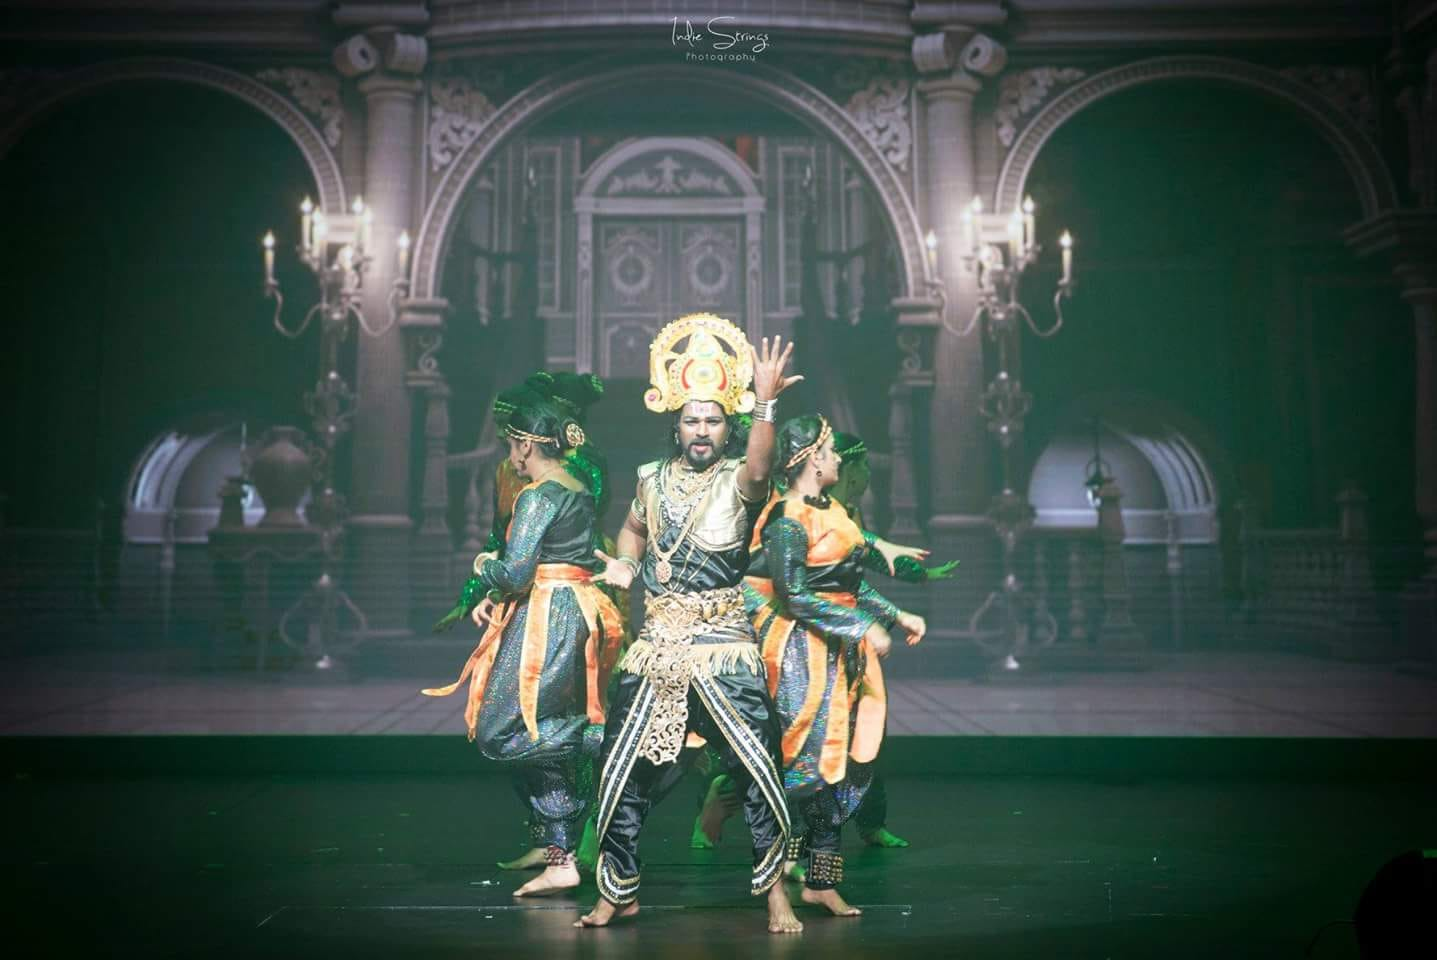 The evergreen villain of that era - Ravan. Photo courtesy: Indie Strings